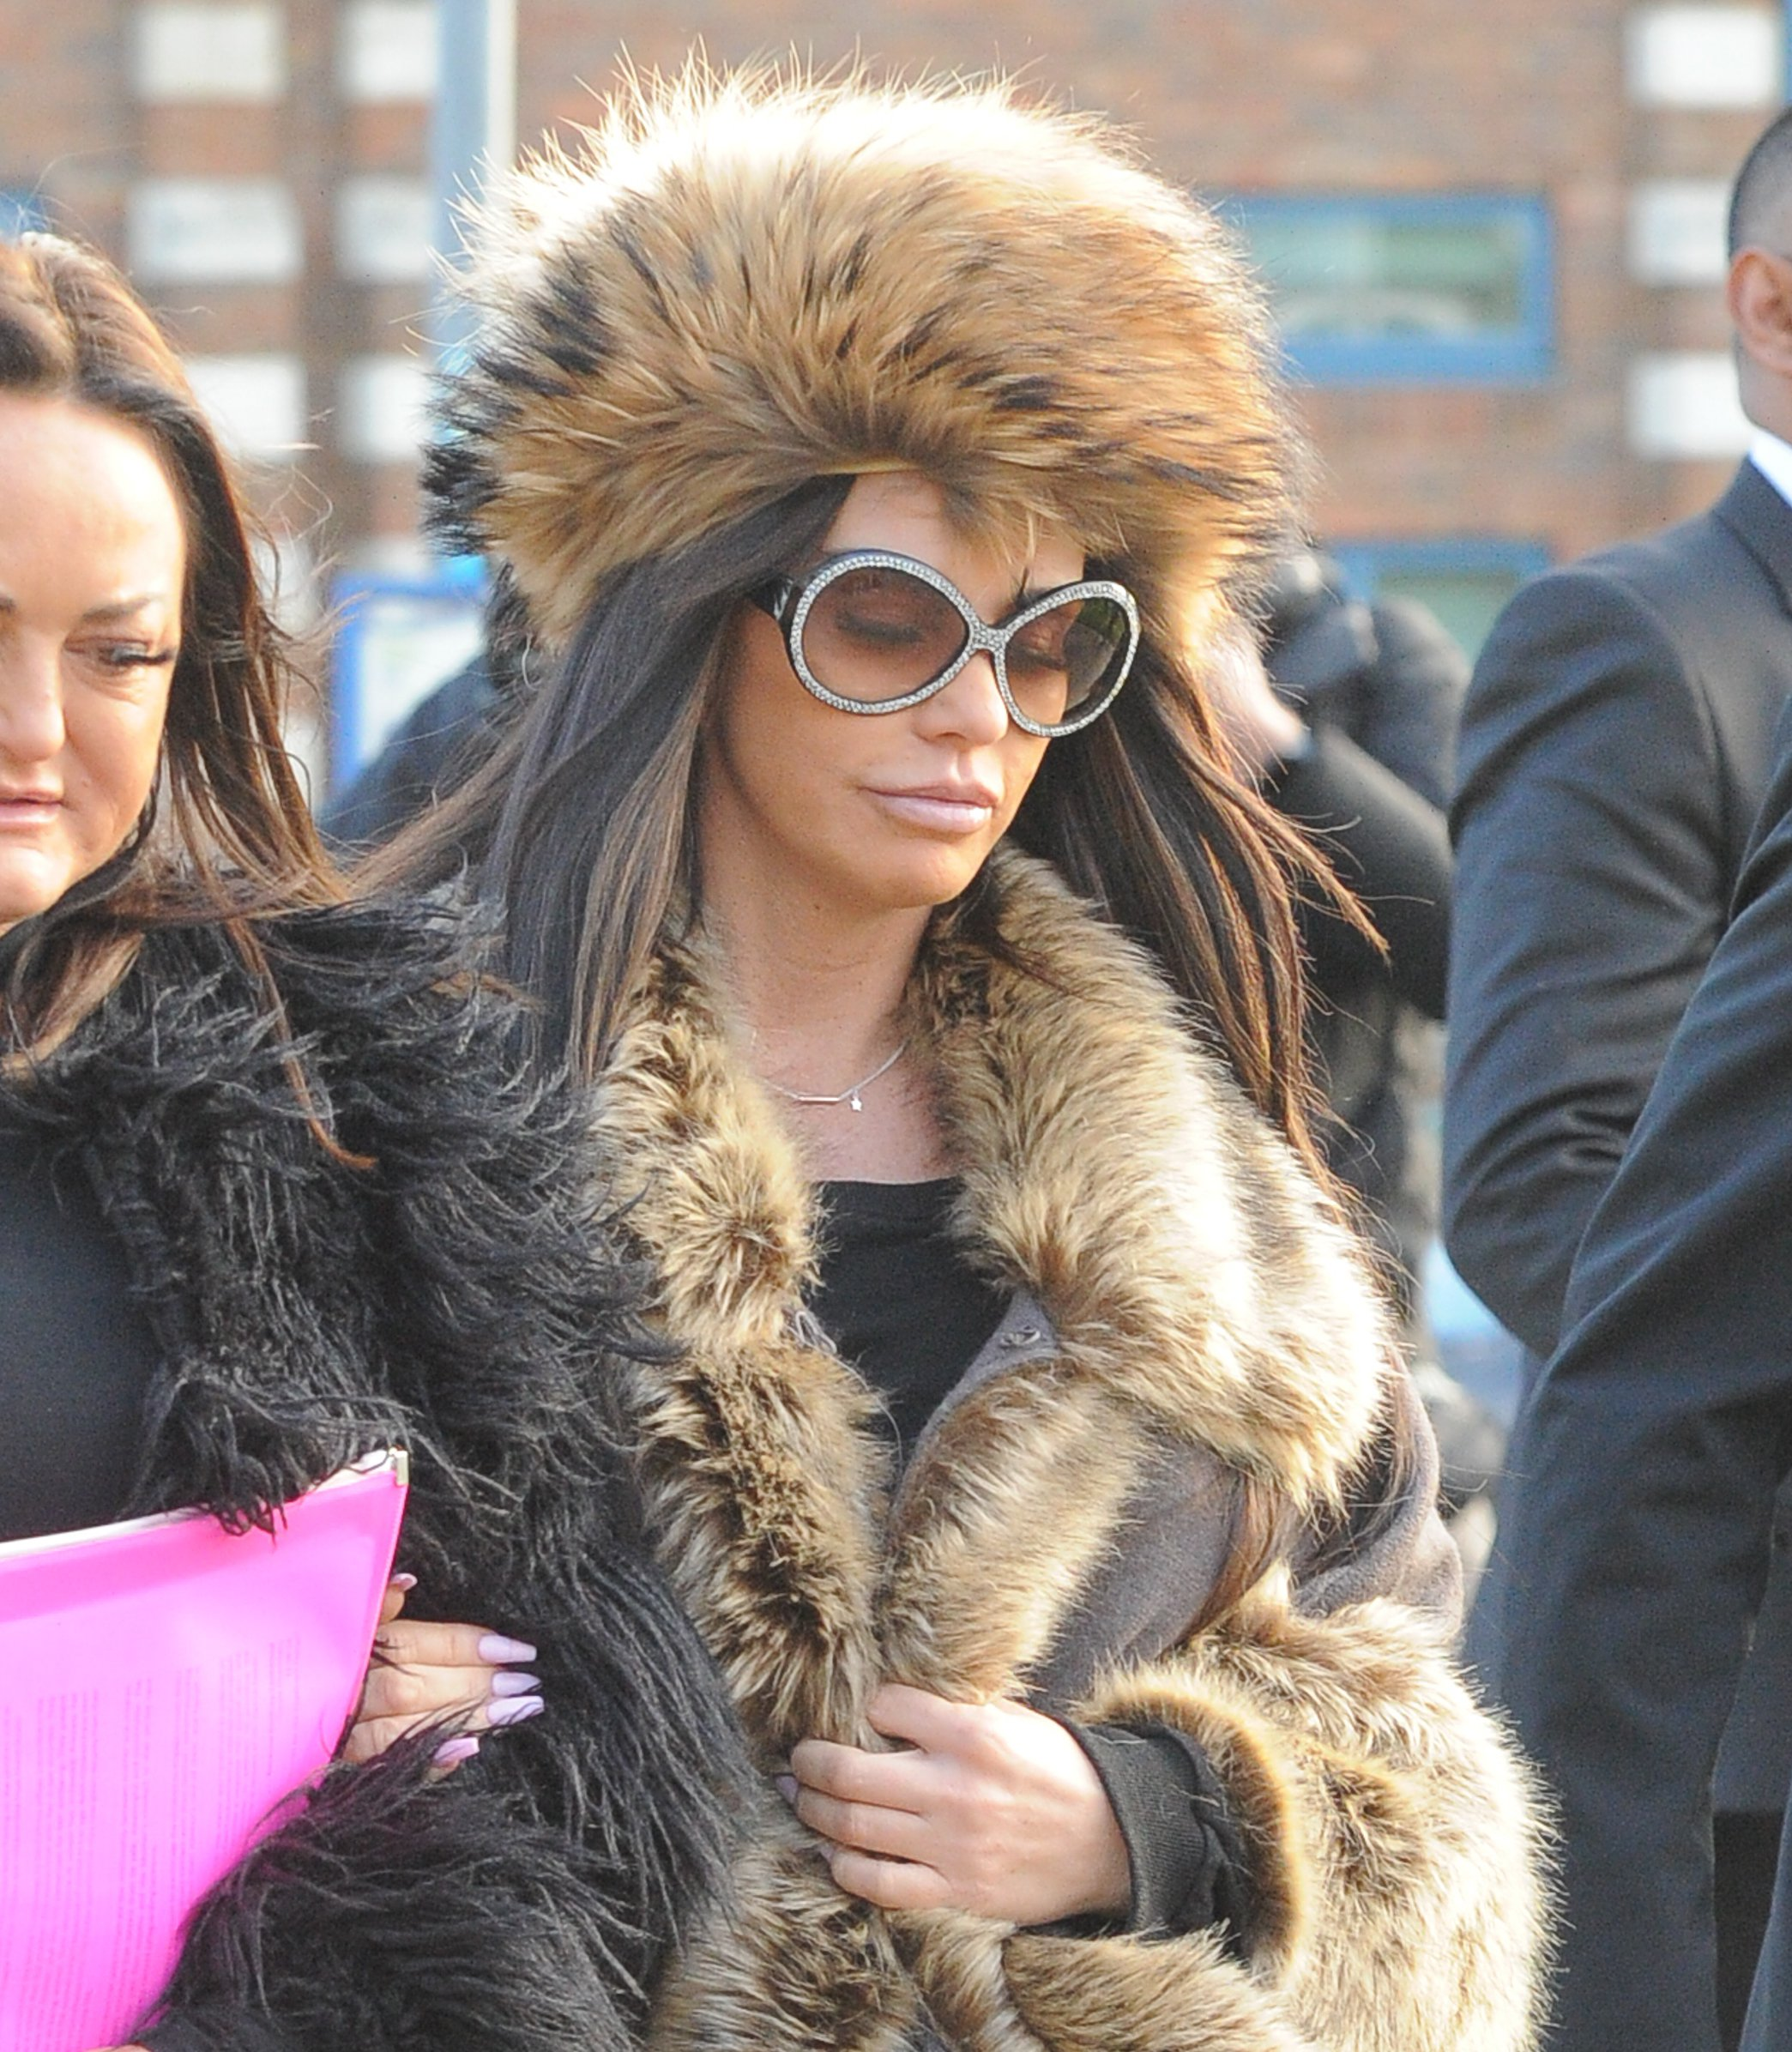 Katie Price arriving at Crawley Magistrates Court Pictured: Katie Price Ref: SPL5054006 090119 NON-EXCLUSIVE Picture by: PALACE LEE / SplashNews.com Splash News and Pictures Los Angeles: 310-821-2666 New York: 212-619-2666 London: 0207 644 7656 Milan: 02 4399 8577 photodesk@splashnews.com World Rights,